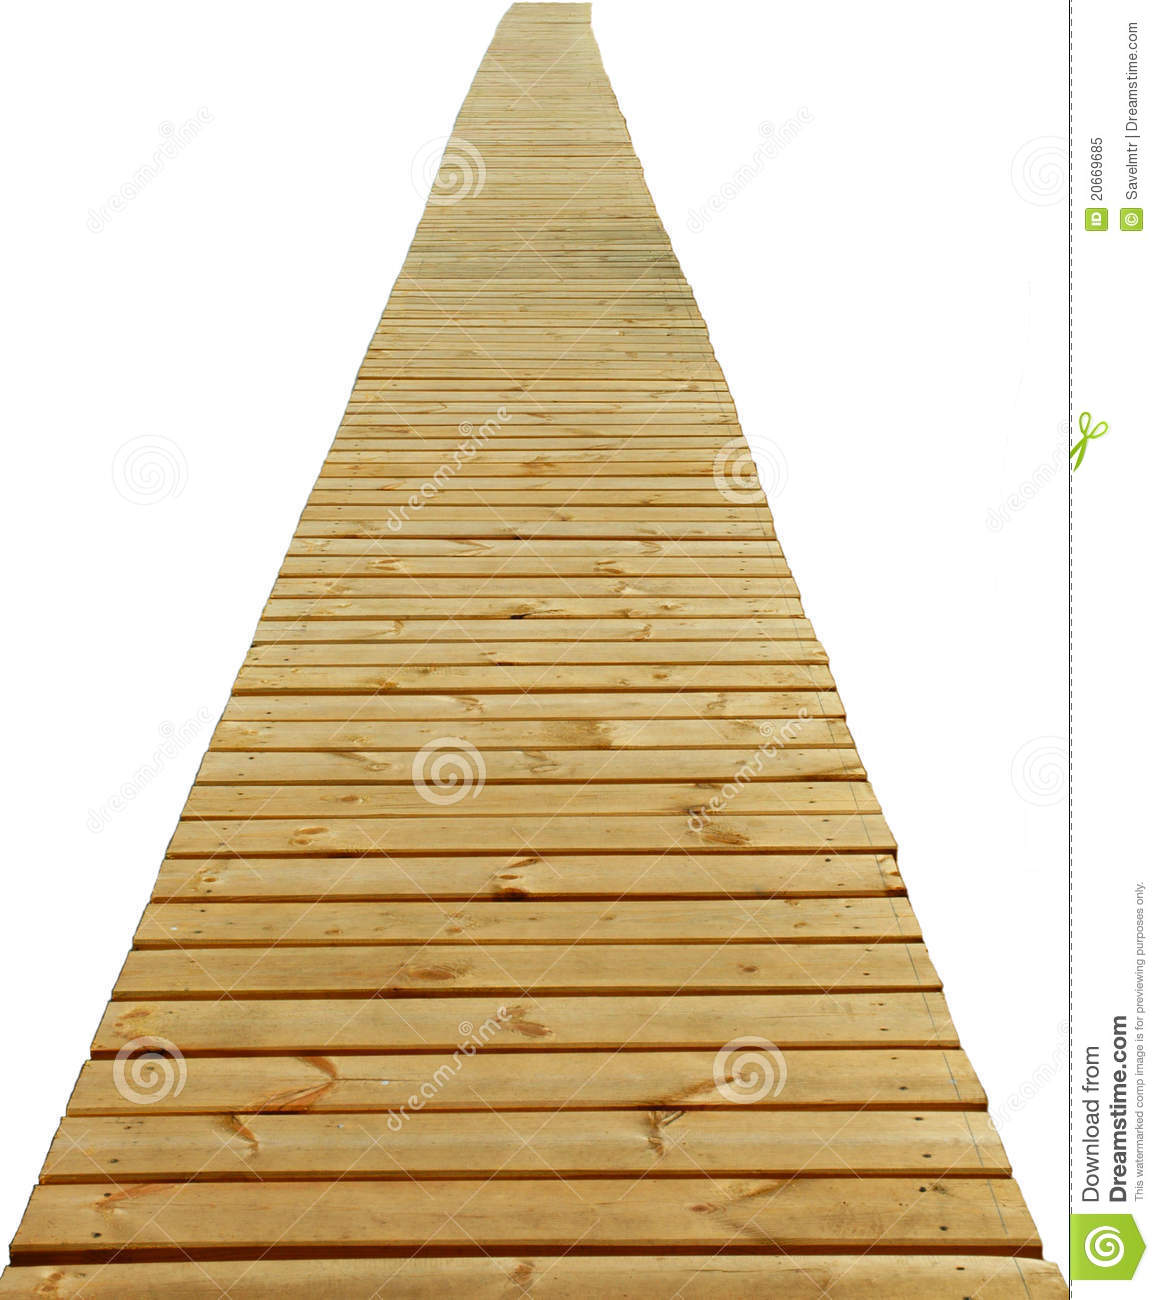 Direct wood path isolated